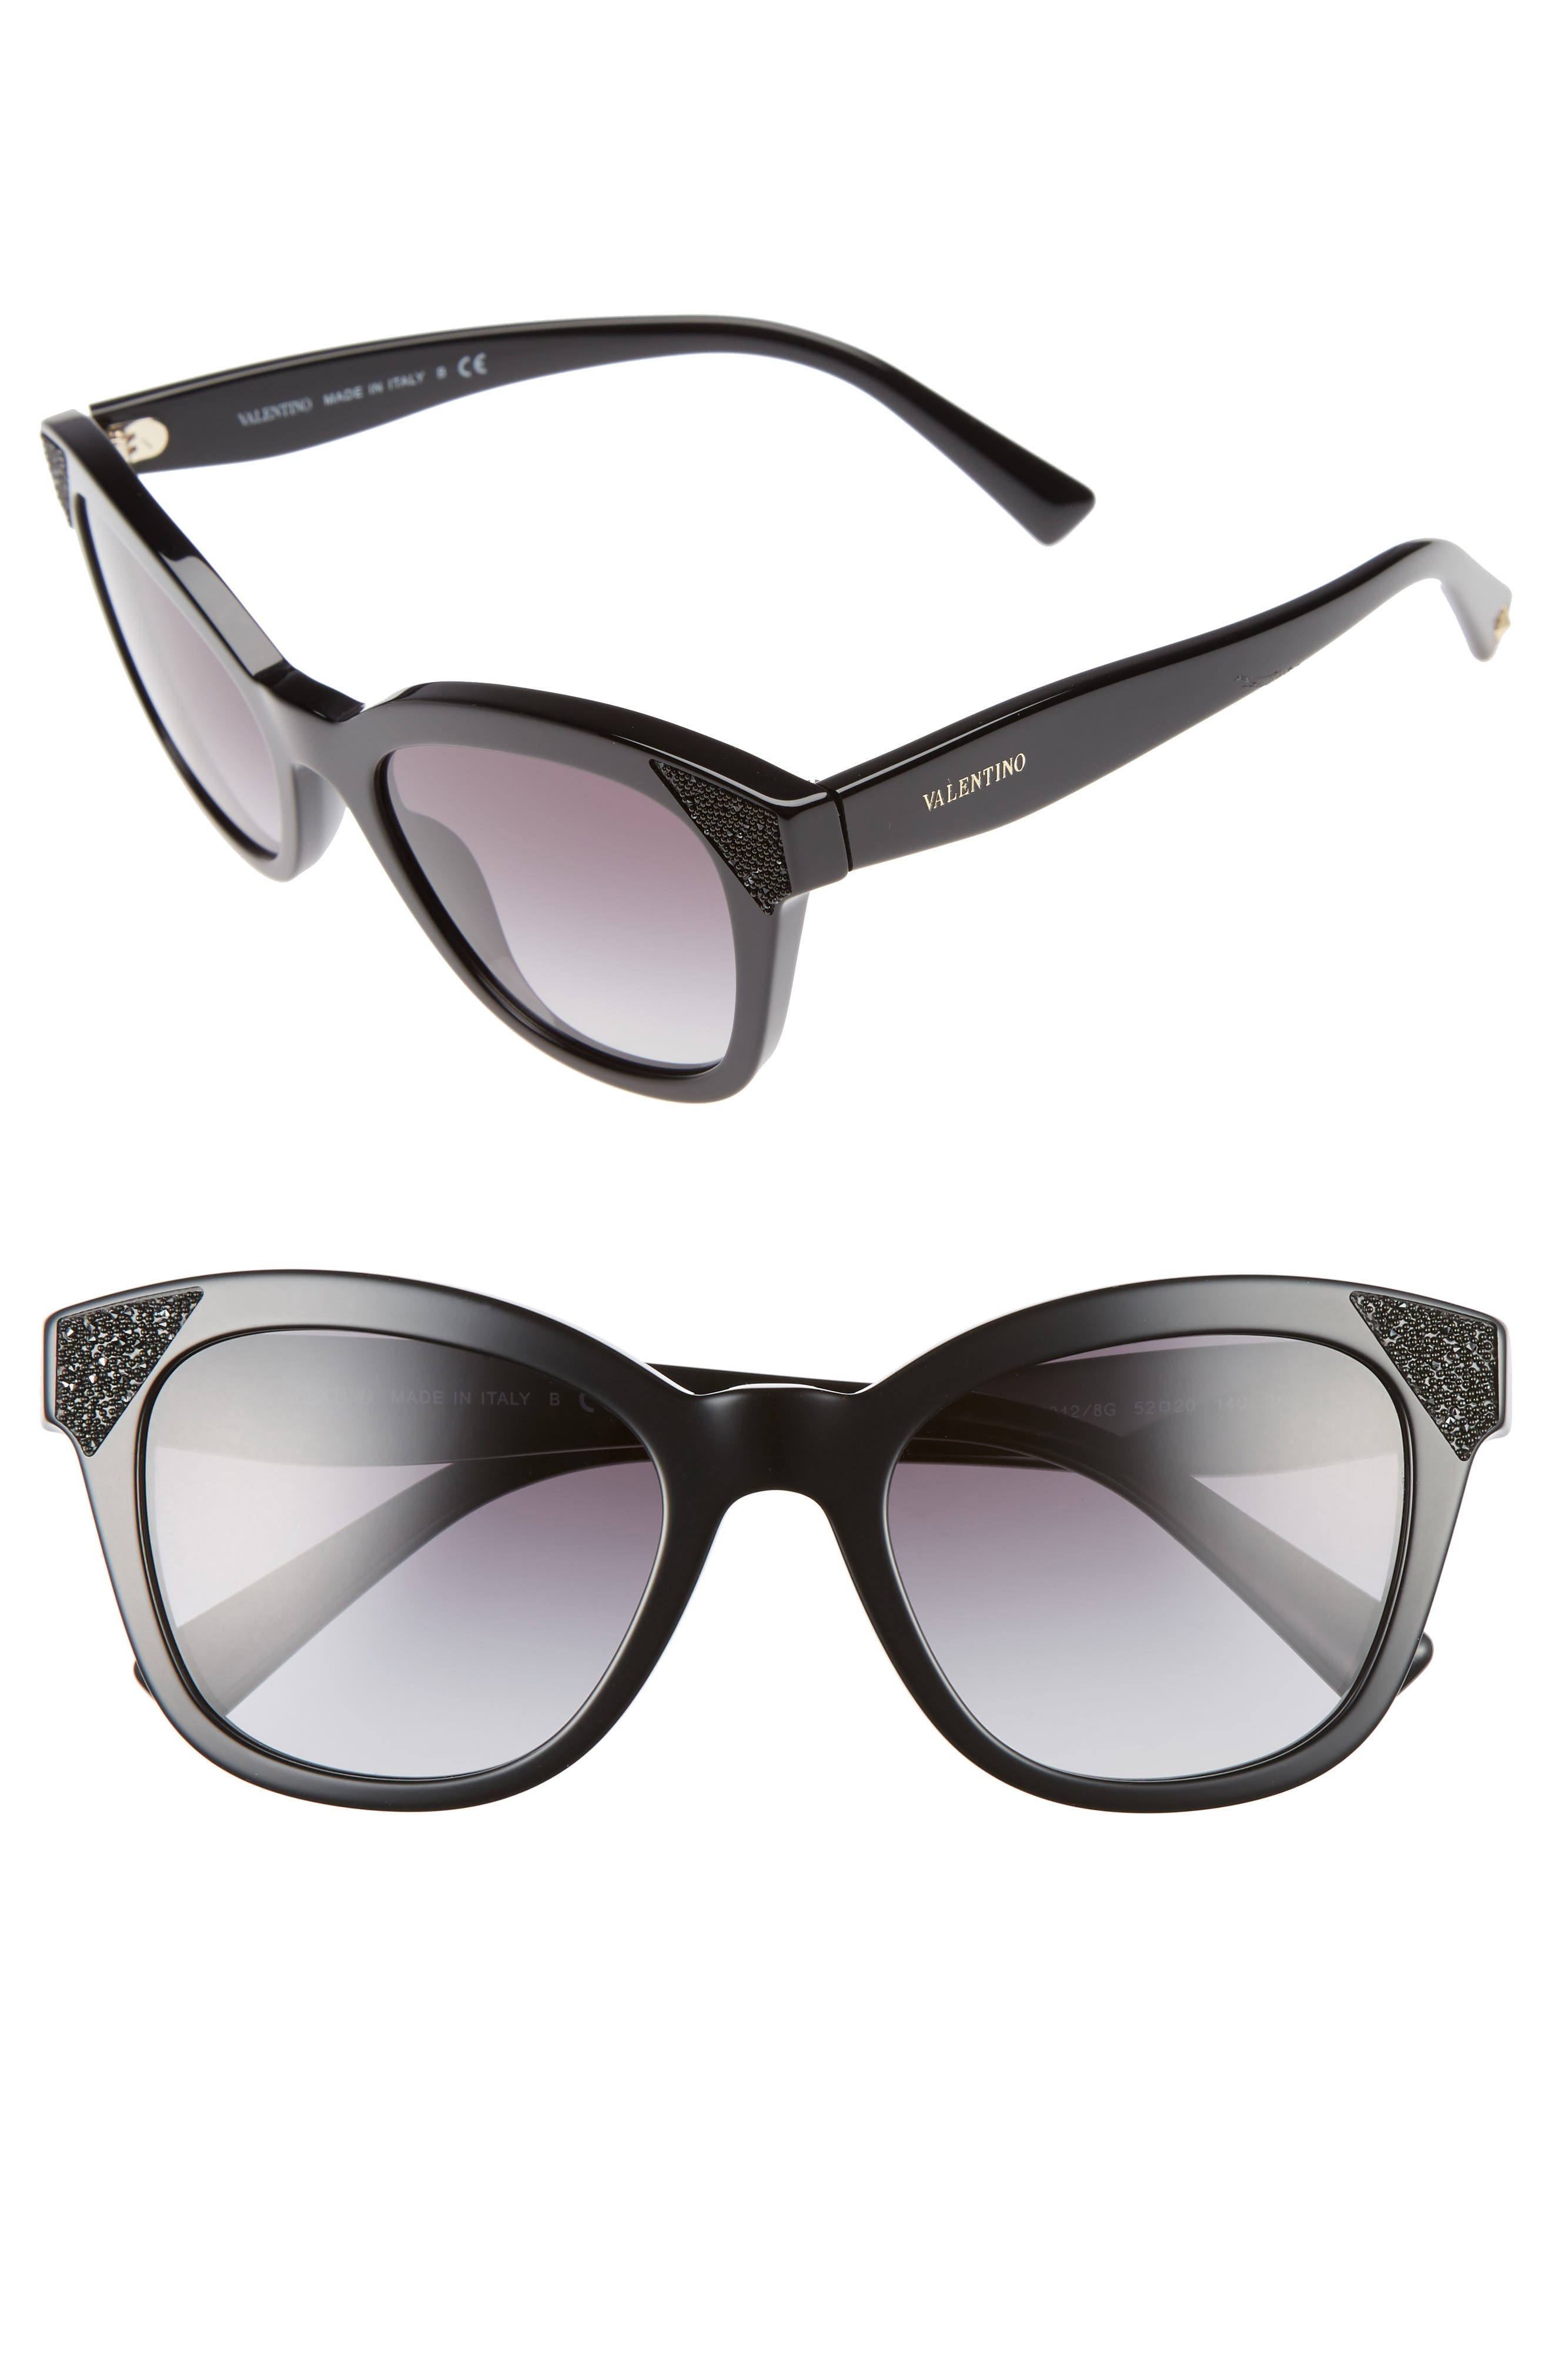 52mm Cat Eye Sunglasses,                         Main,                         color, BLACK/ BLACK CRYSTAL